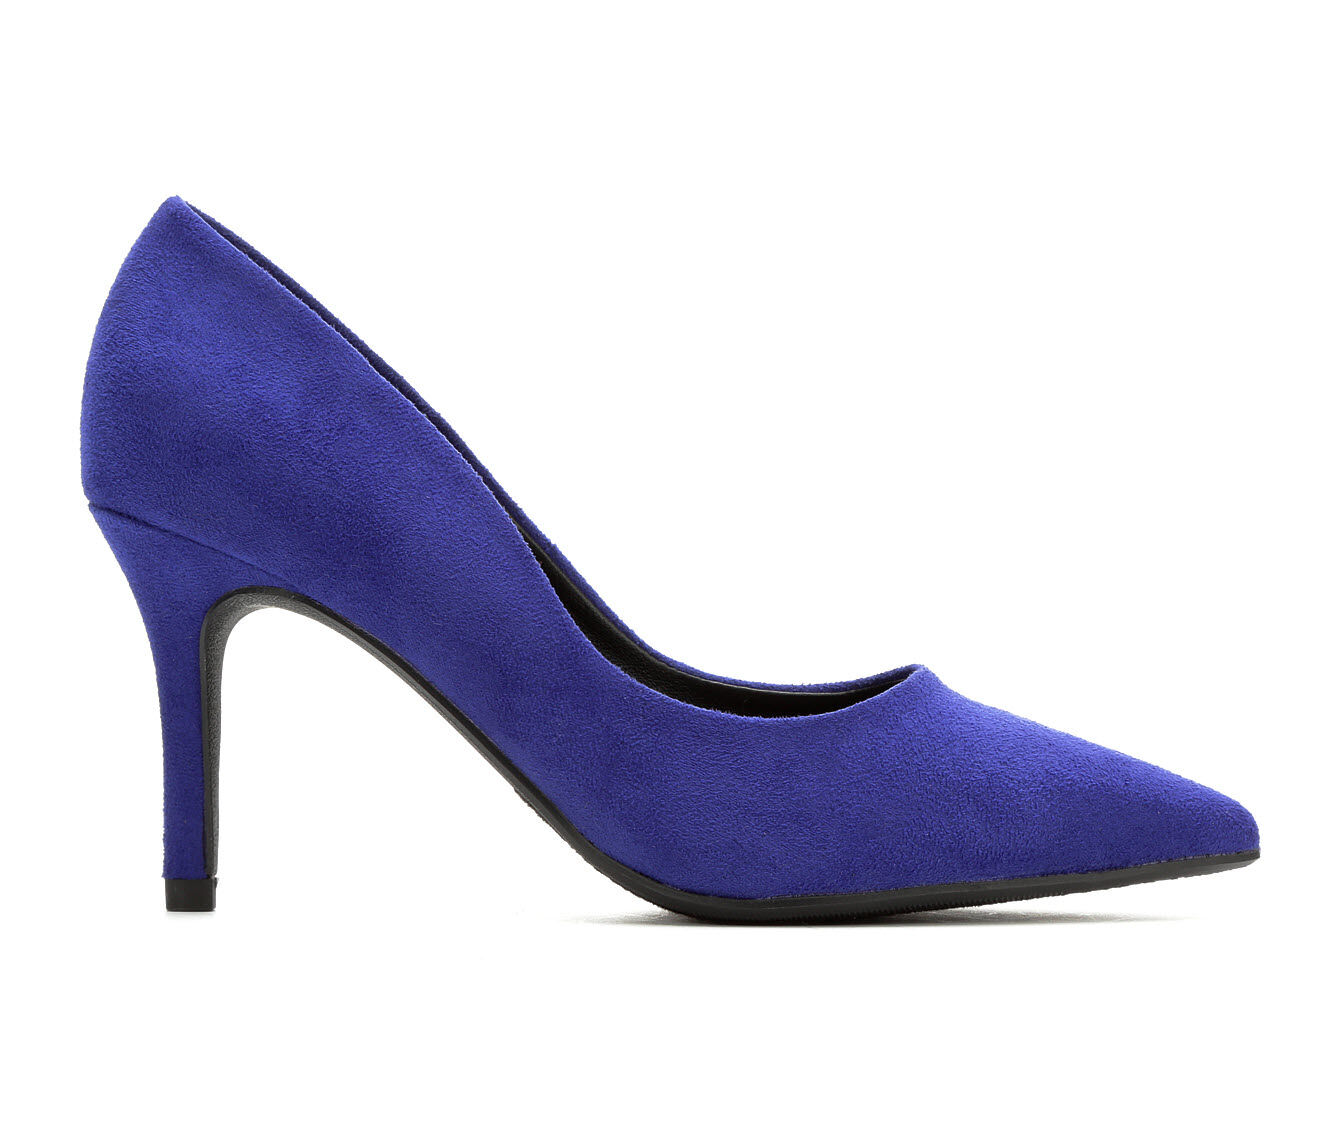 buy new arrivals Women's Y-Not Kambo Pumps Elec Blue Micro